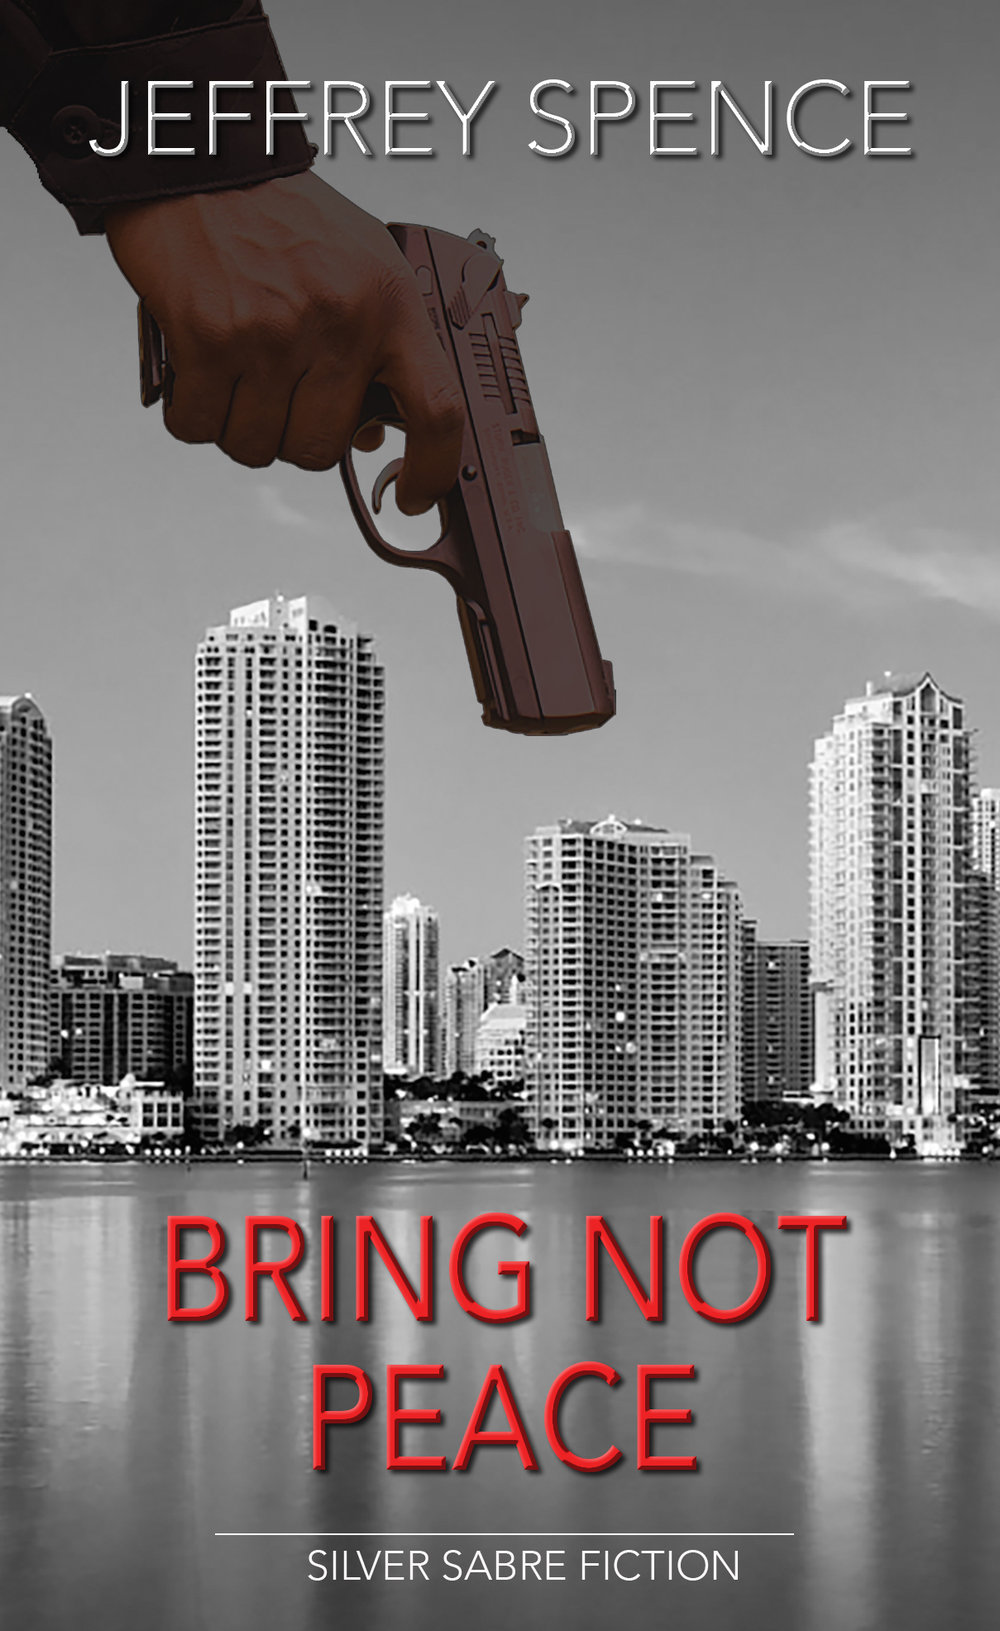 IDT03 5 Bring Not Peace cover eBook.jpg